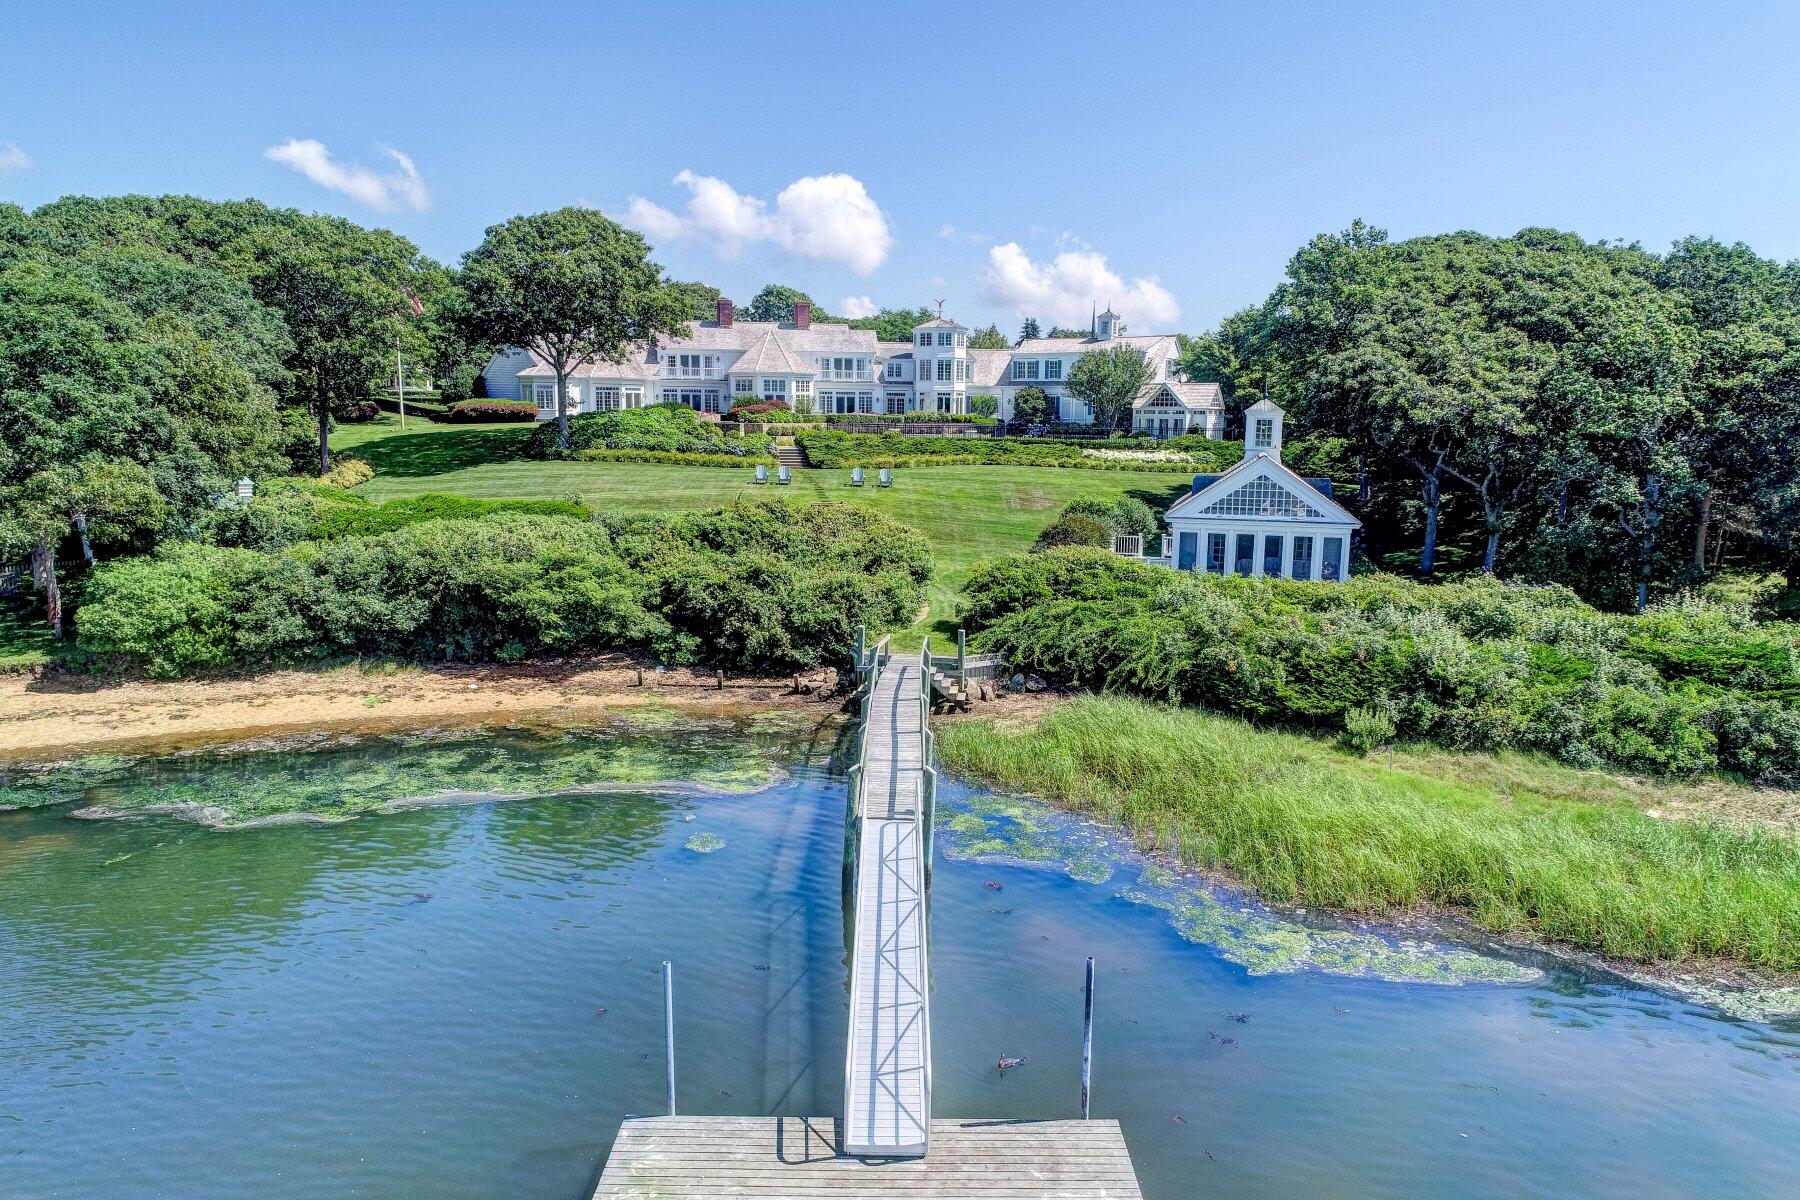 click to view more details 60 Harbor Road, Harwich Port, MA 02646